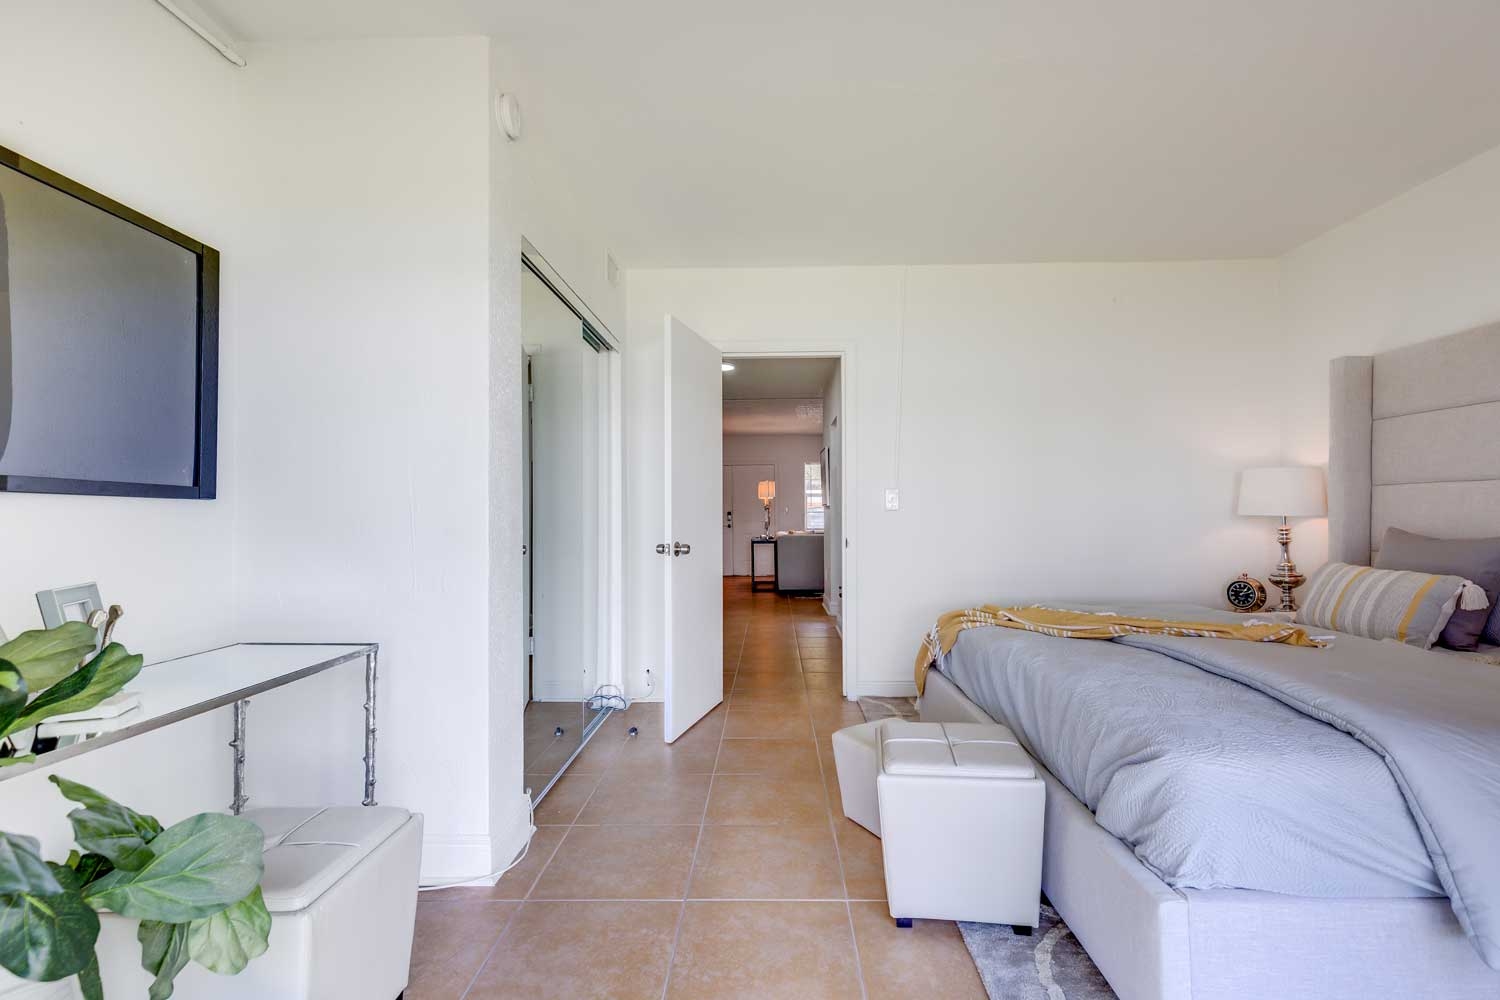 Two Bedroom Floor Plans at New Castle Lake in Miami, FL